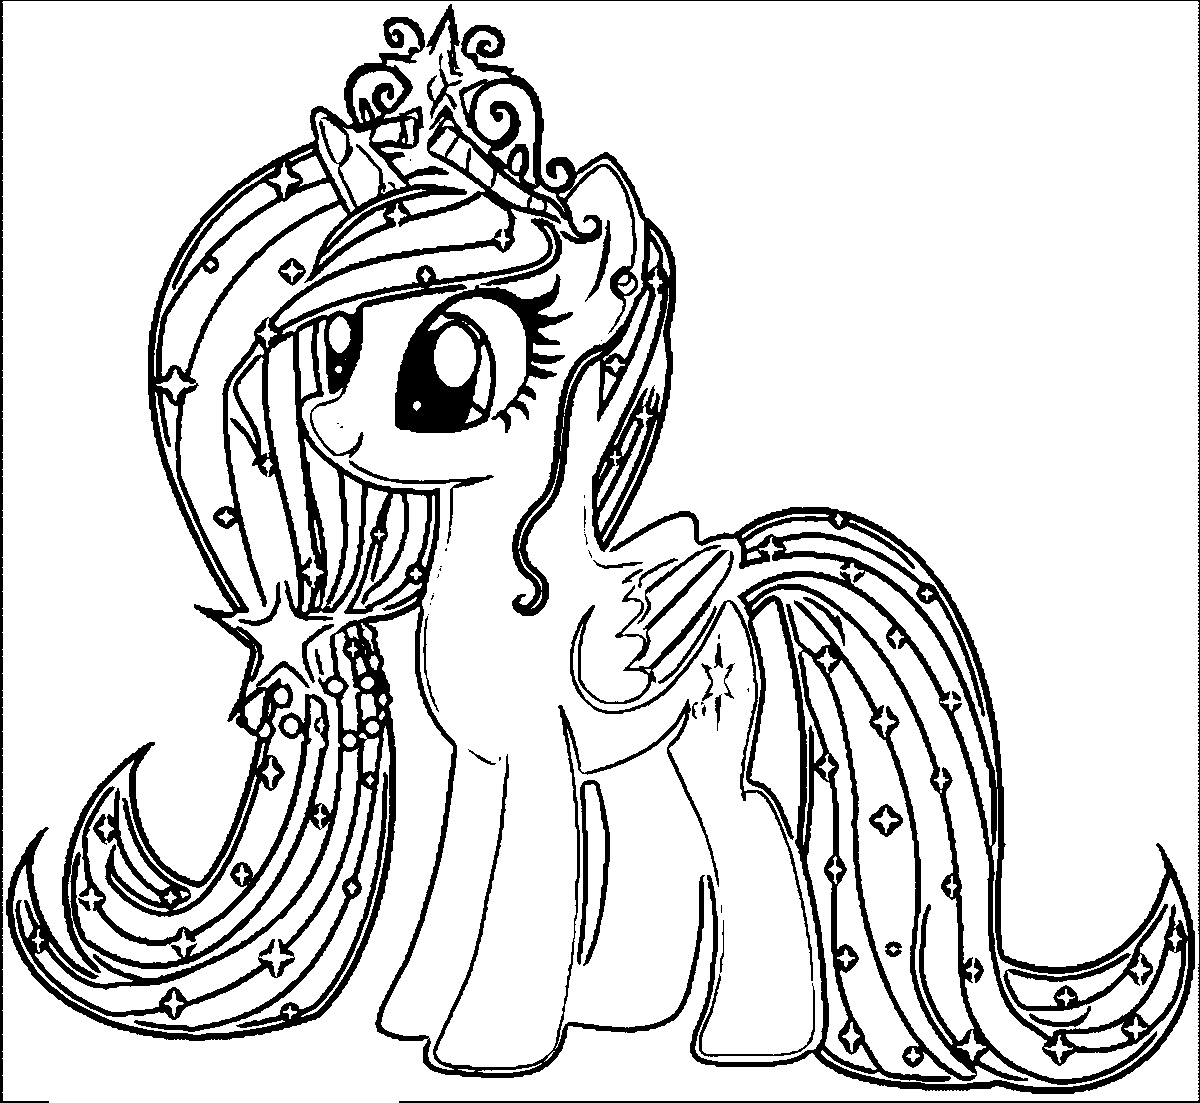 mlp colouring my little pony coloring pages mlp colouring 1 2